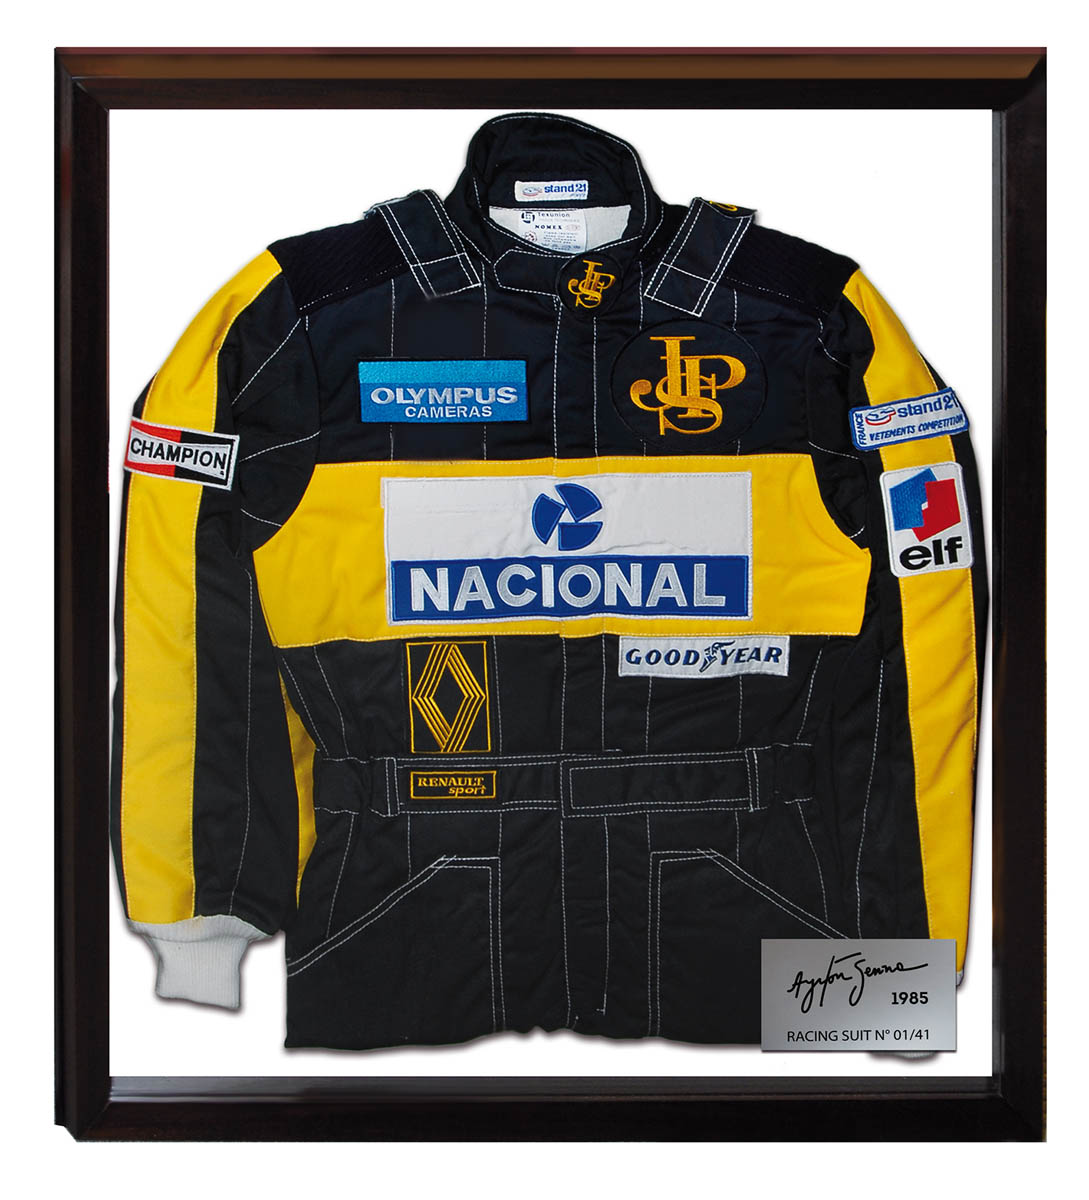 Ayrton Senna Limited Edition suit